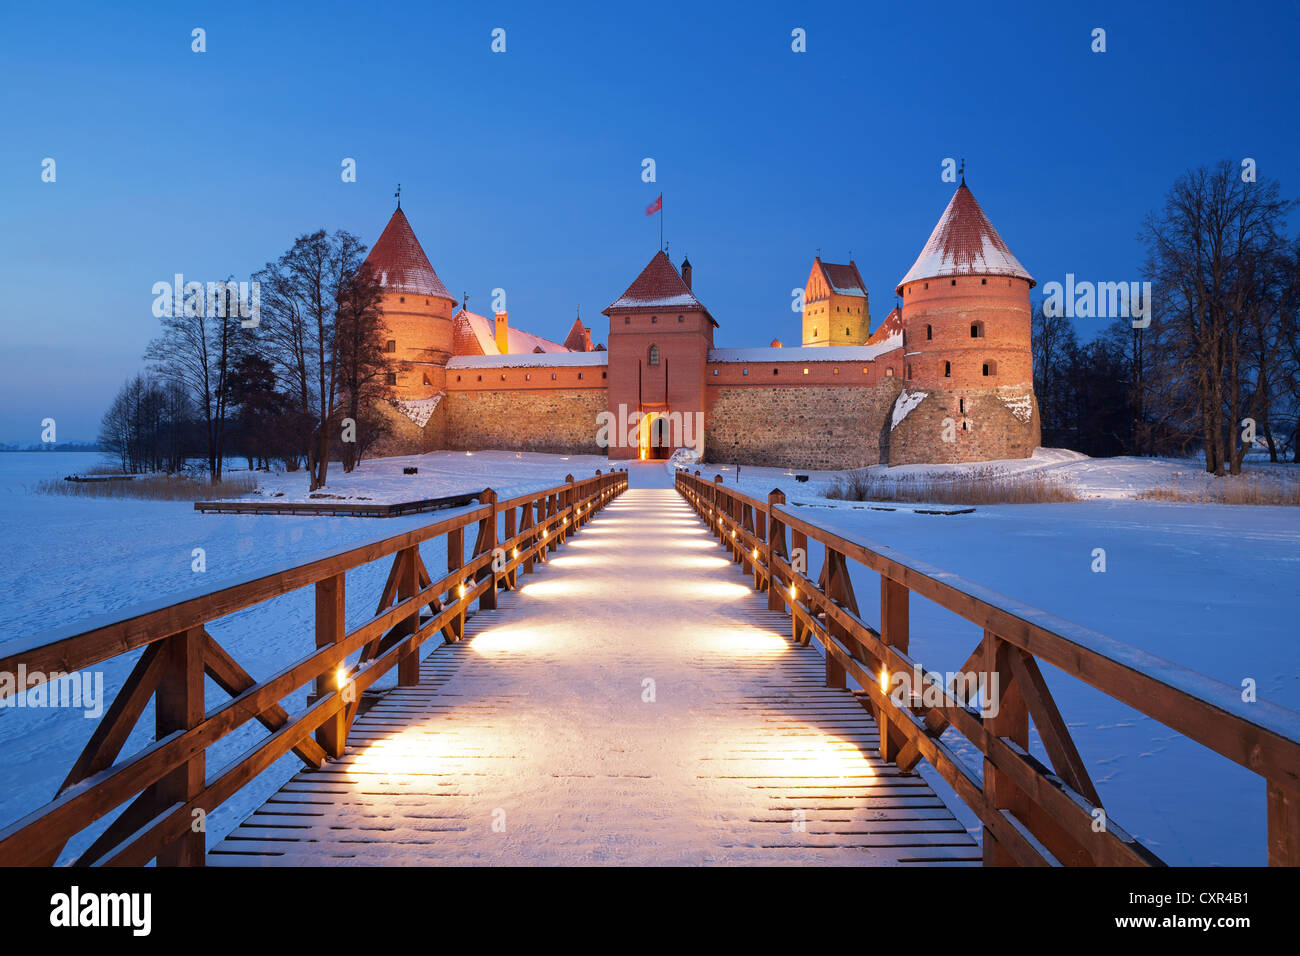 Trakai. Trakai is a historic city and lake resort in Lithuania. It lies 28 km west of Vilnius, the capital of Lithuania. - Stock Image